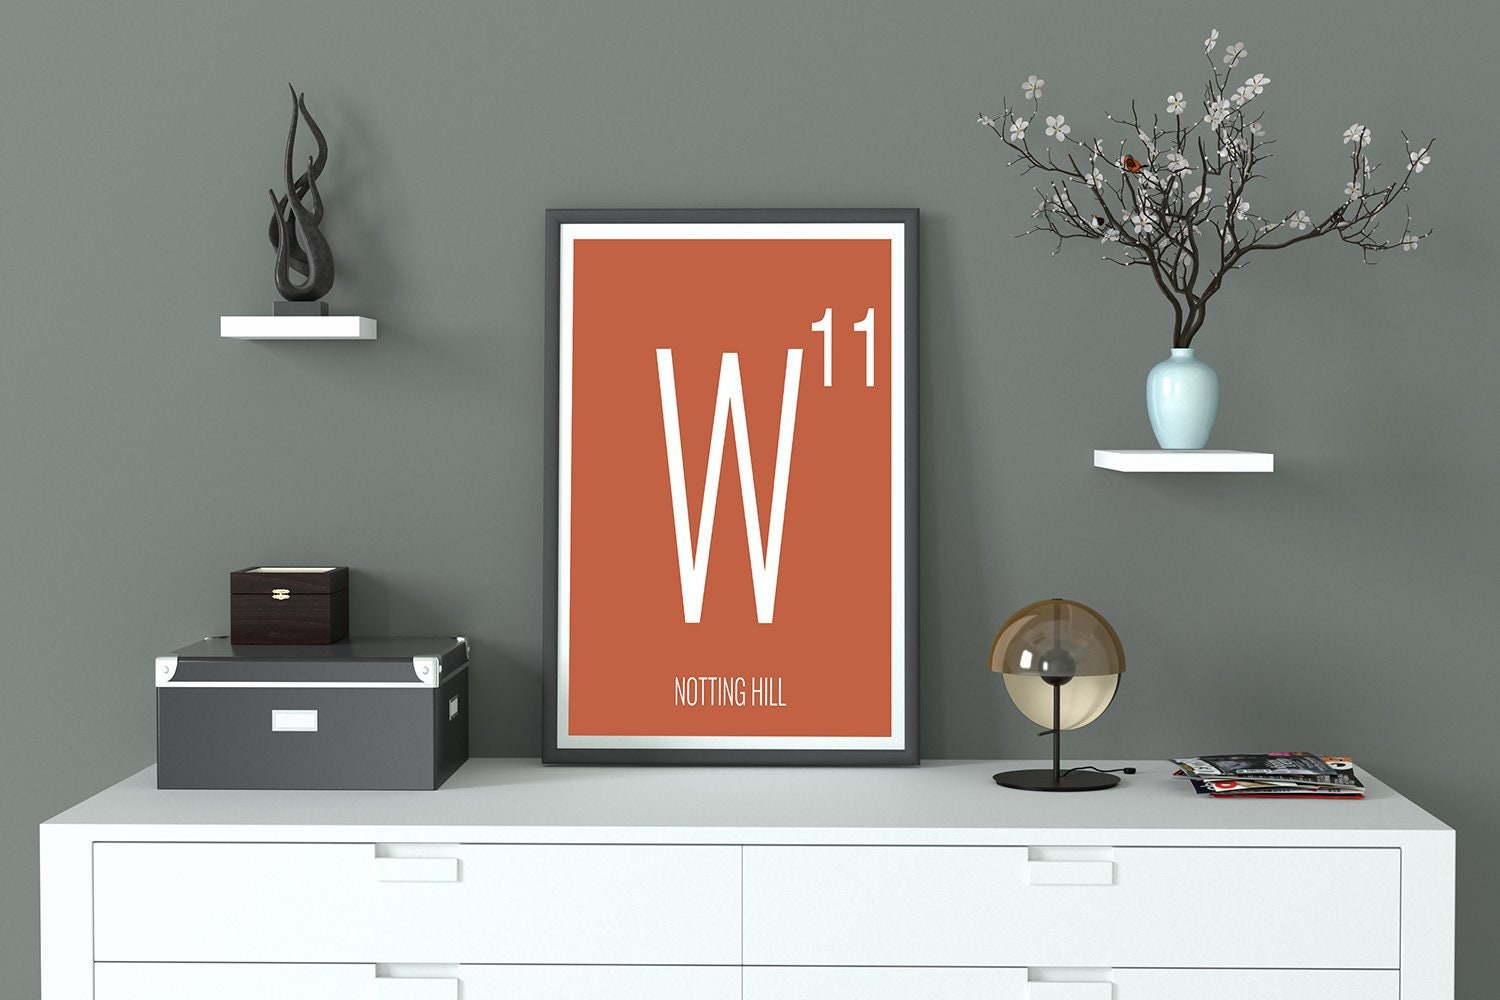 W11 Notting Hill art print Red, Postcode Art print, London W11 Postcode,  Minimal, London Underground Poster, Love Notting Hill